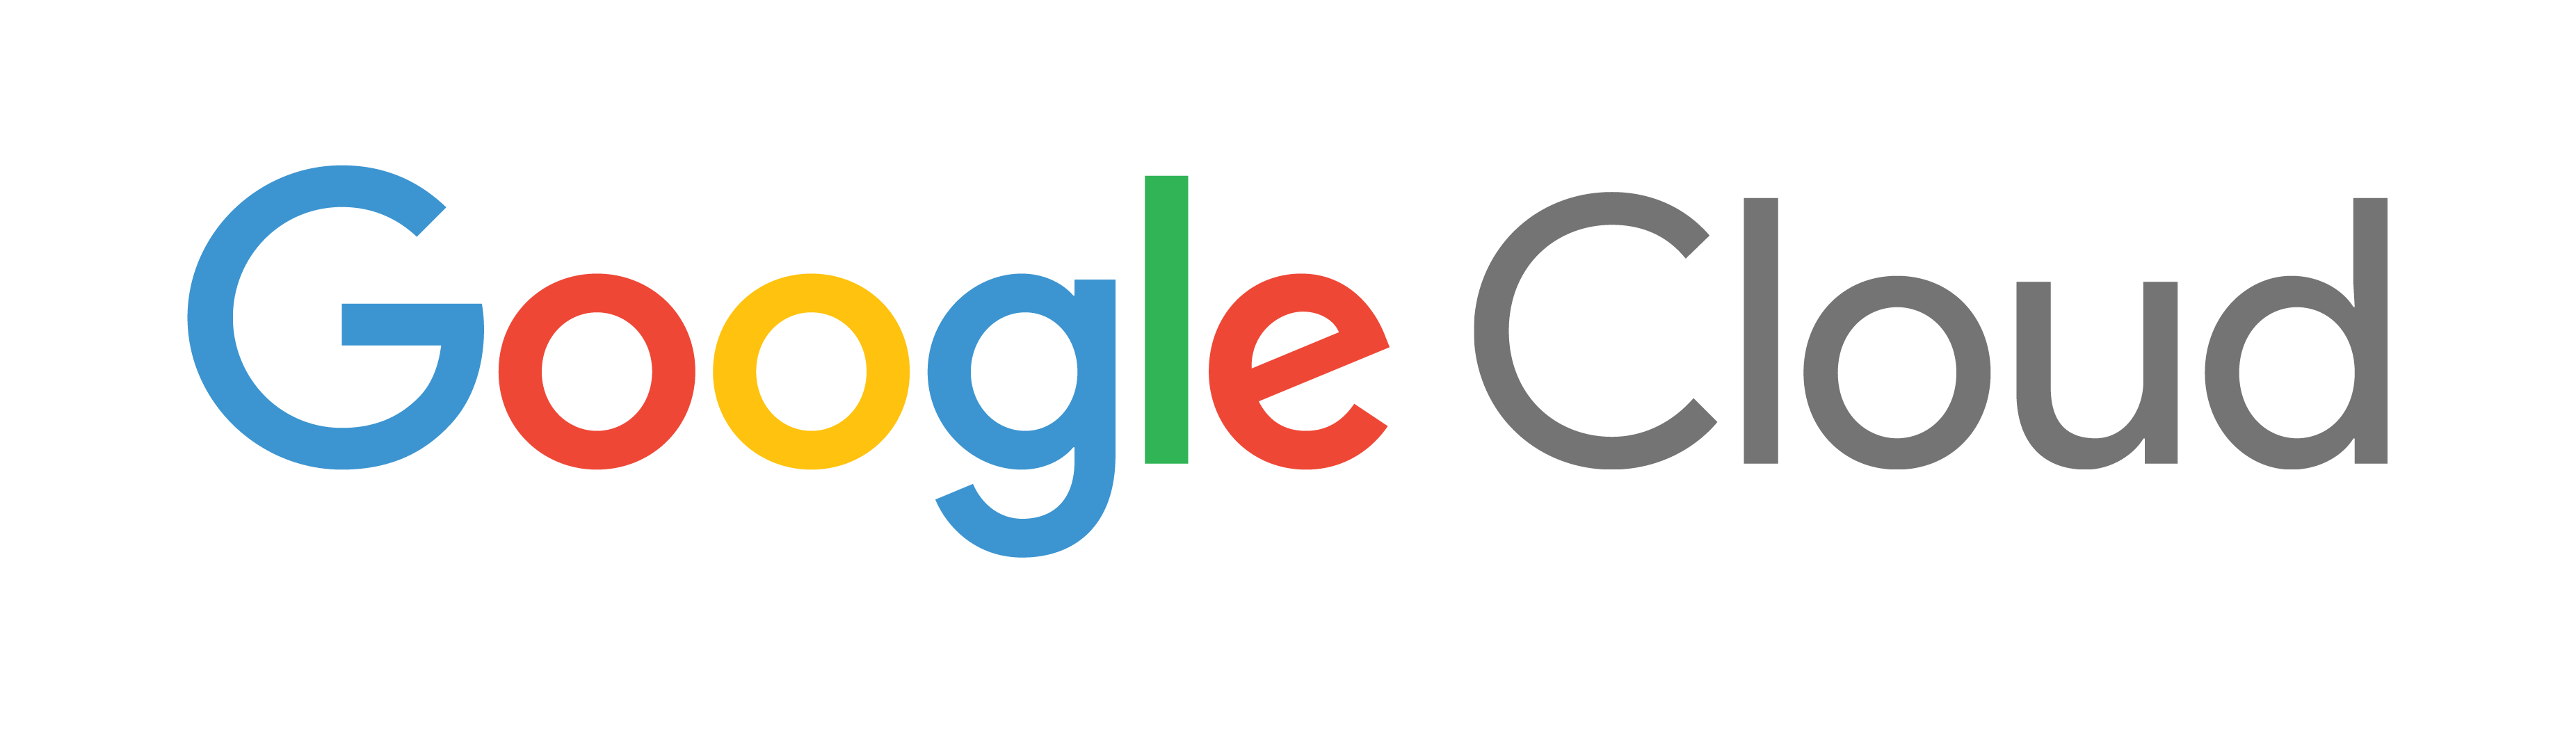 Google for Work logo png eSource Capital Google Partner